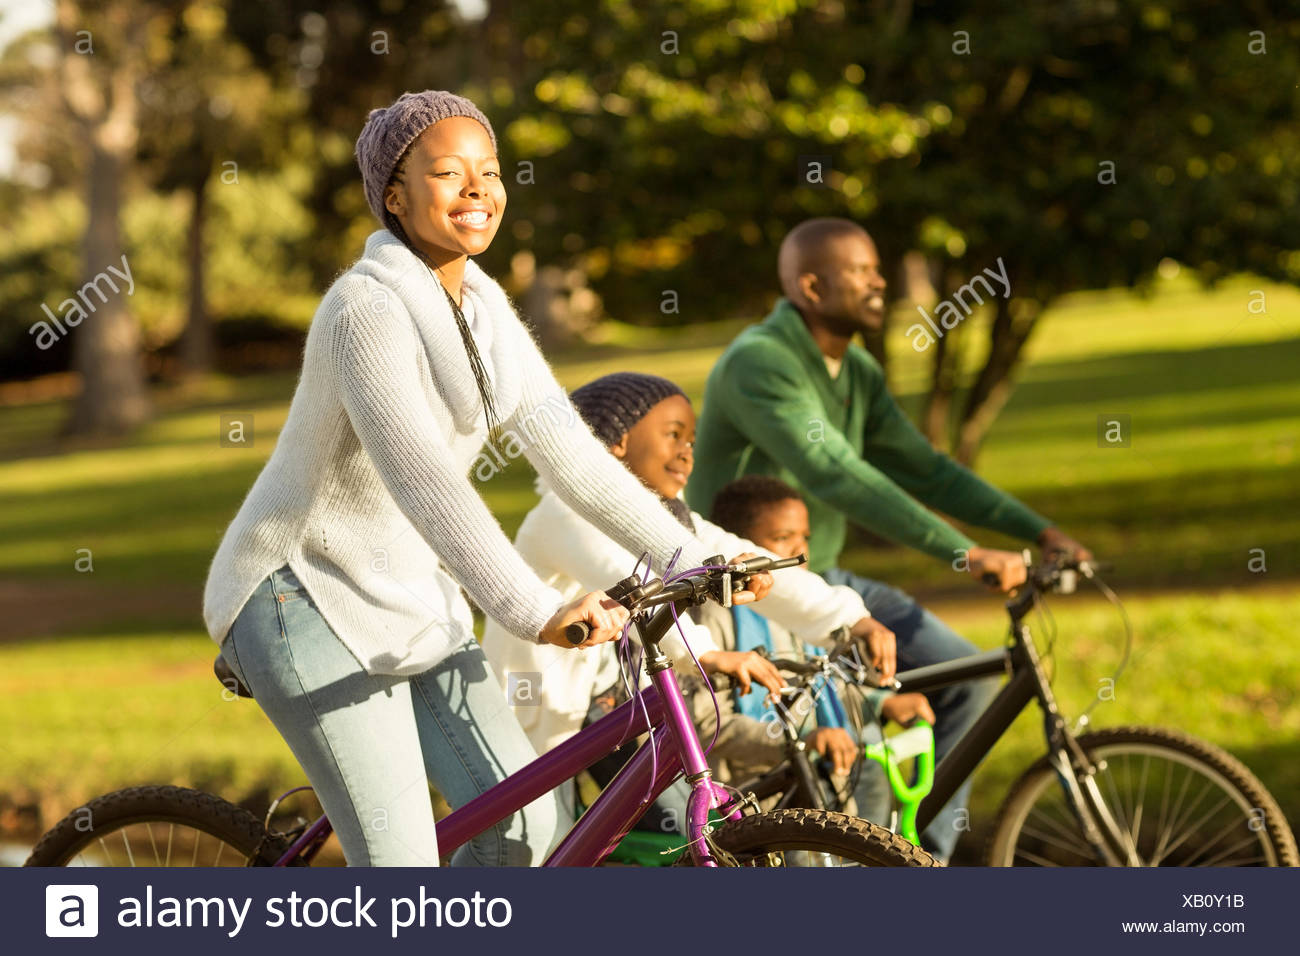 Side view of a young family doing a bike ride Stock Photo